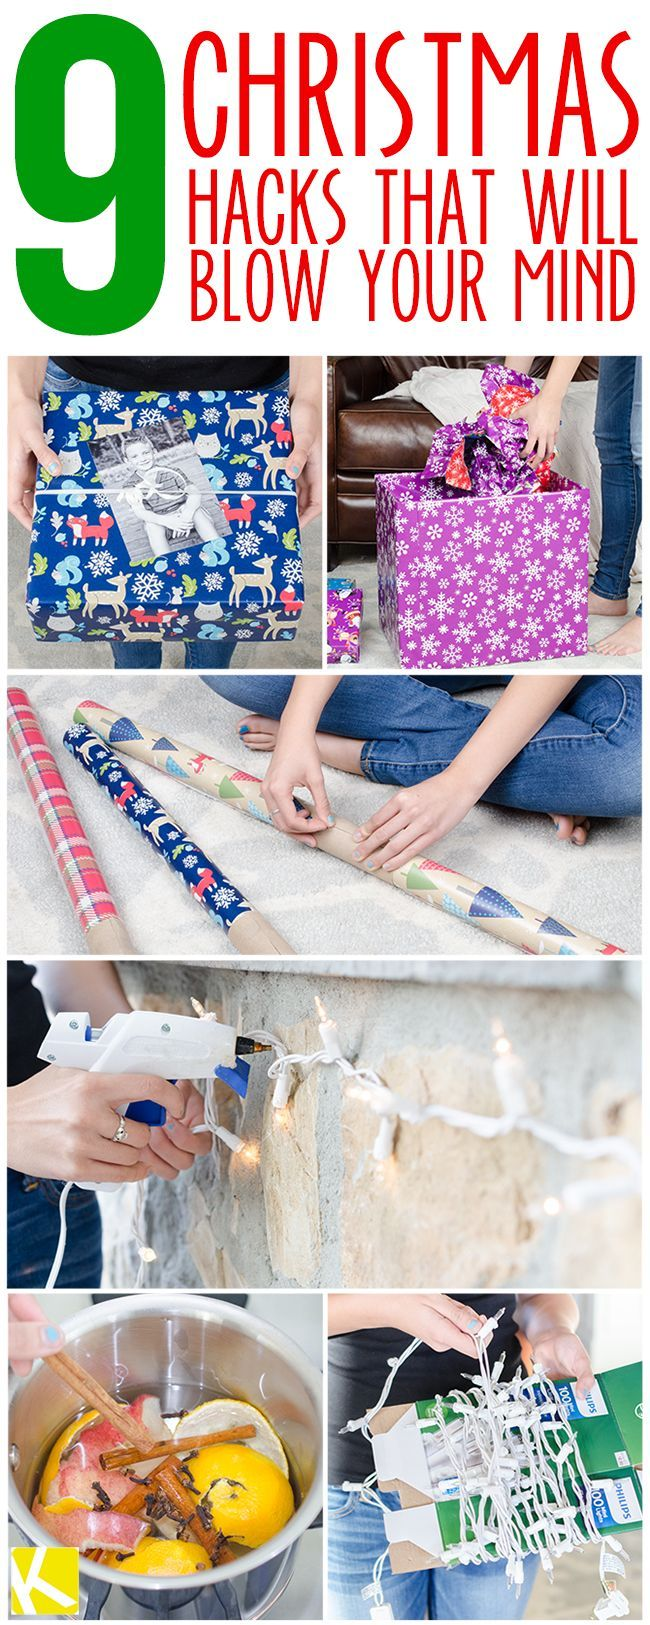 9 Christmas Hacks That Will Blow Your Mind - (thekrazycouponlady)